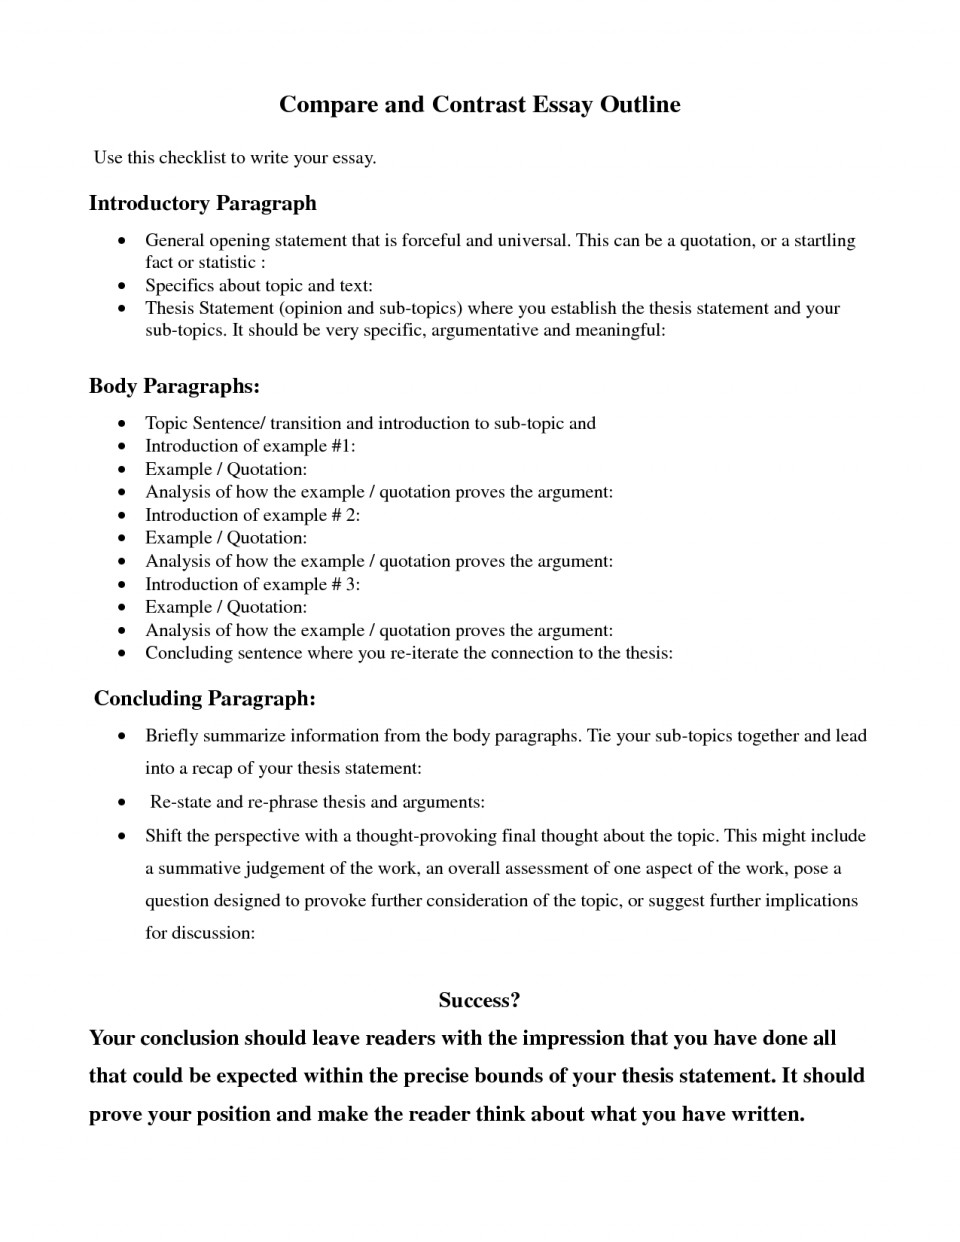 001 Compare And Contrast Essay Example Frightening Prompts 5th Grade Rubric College Ideas 12th 960